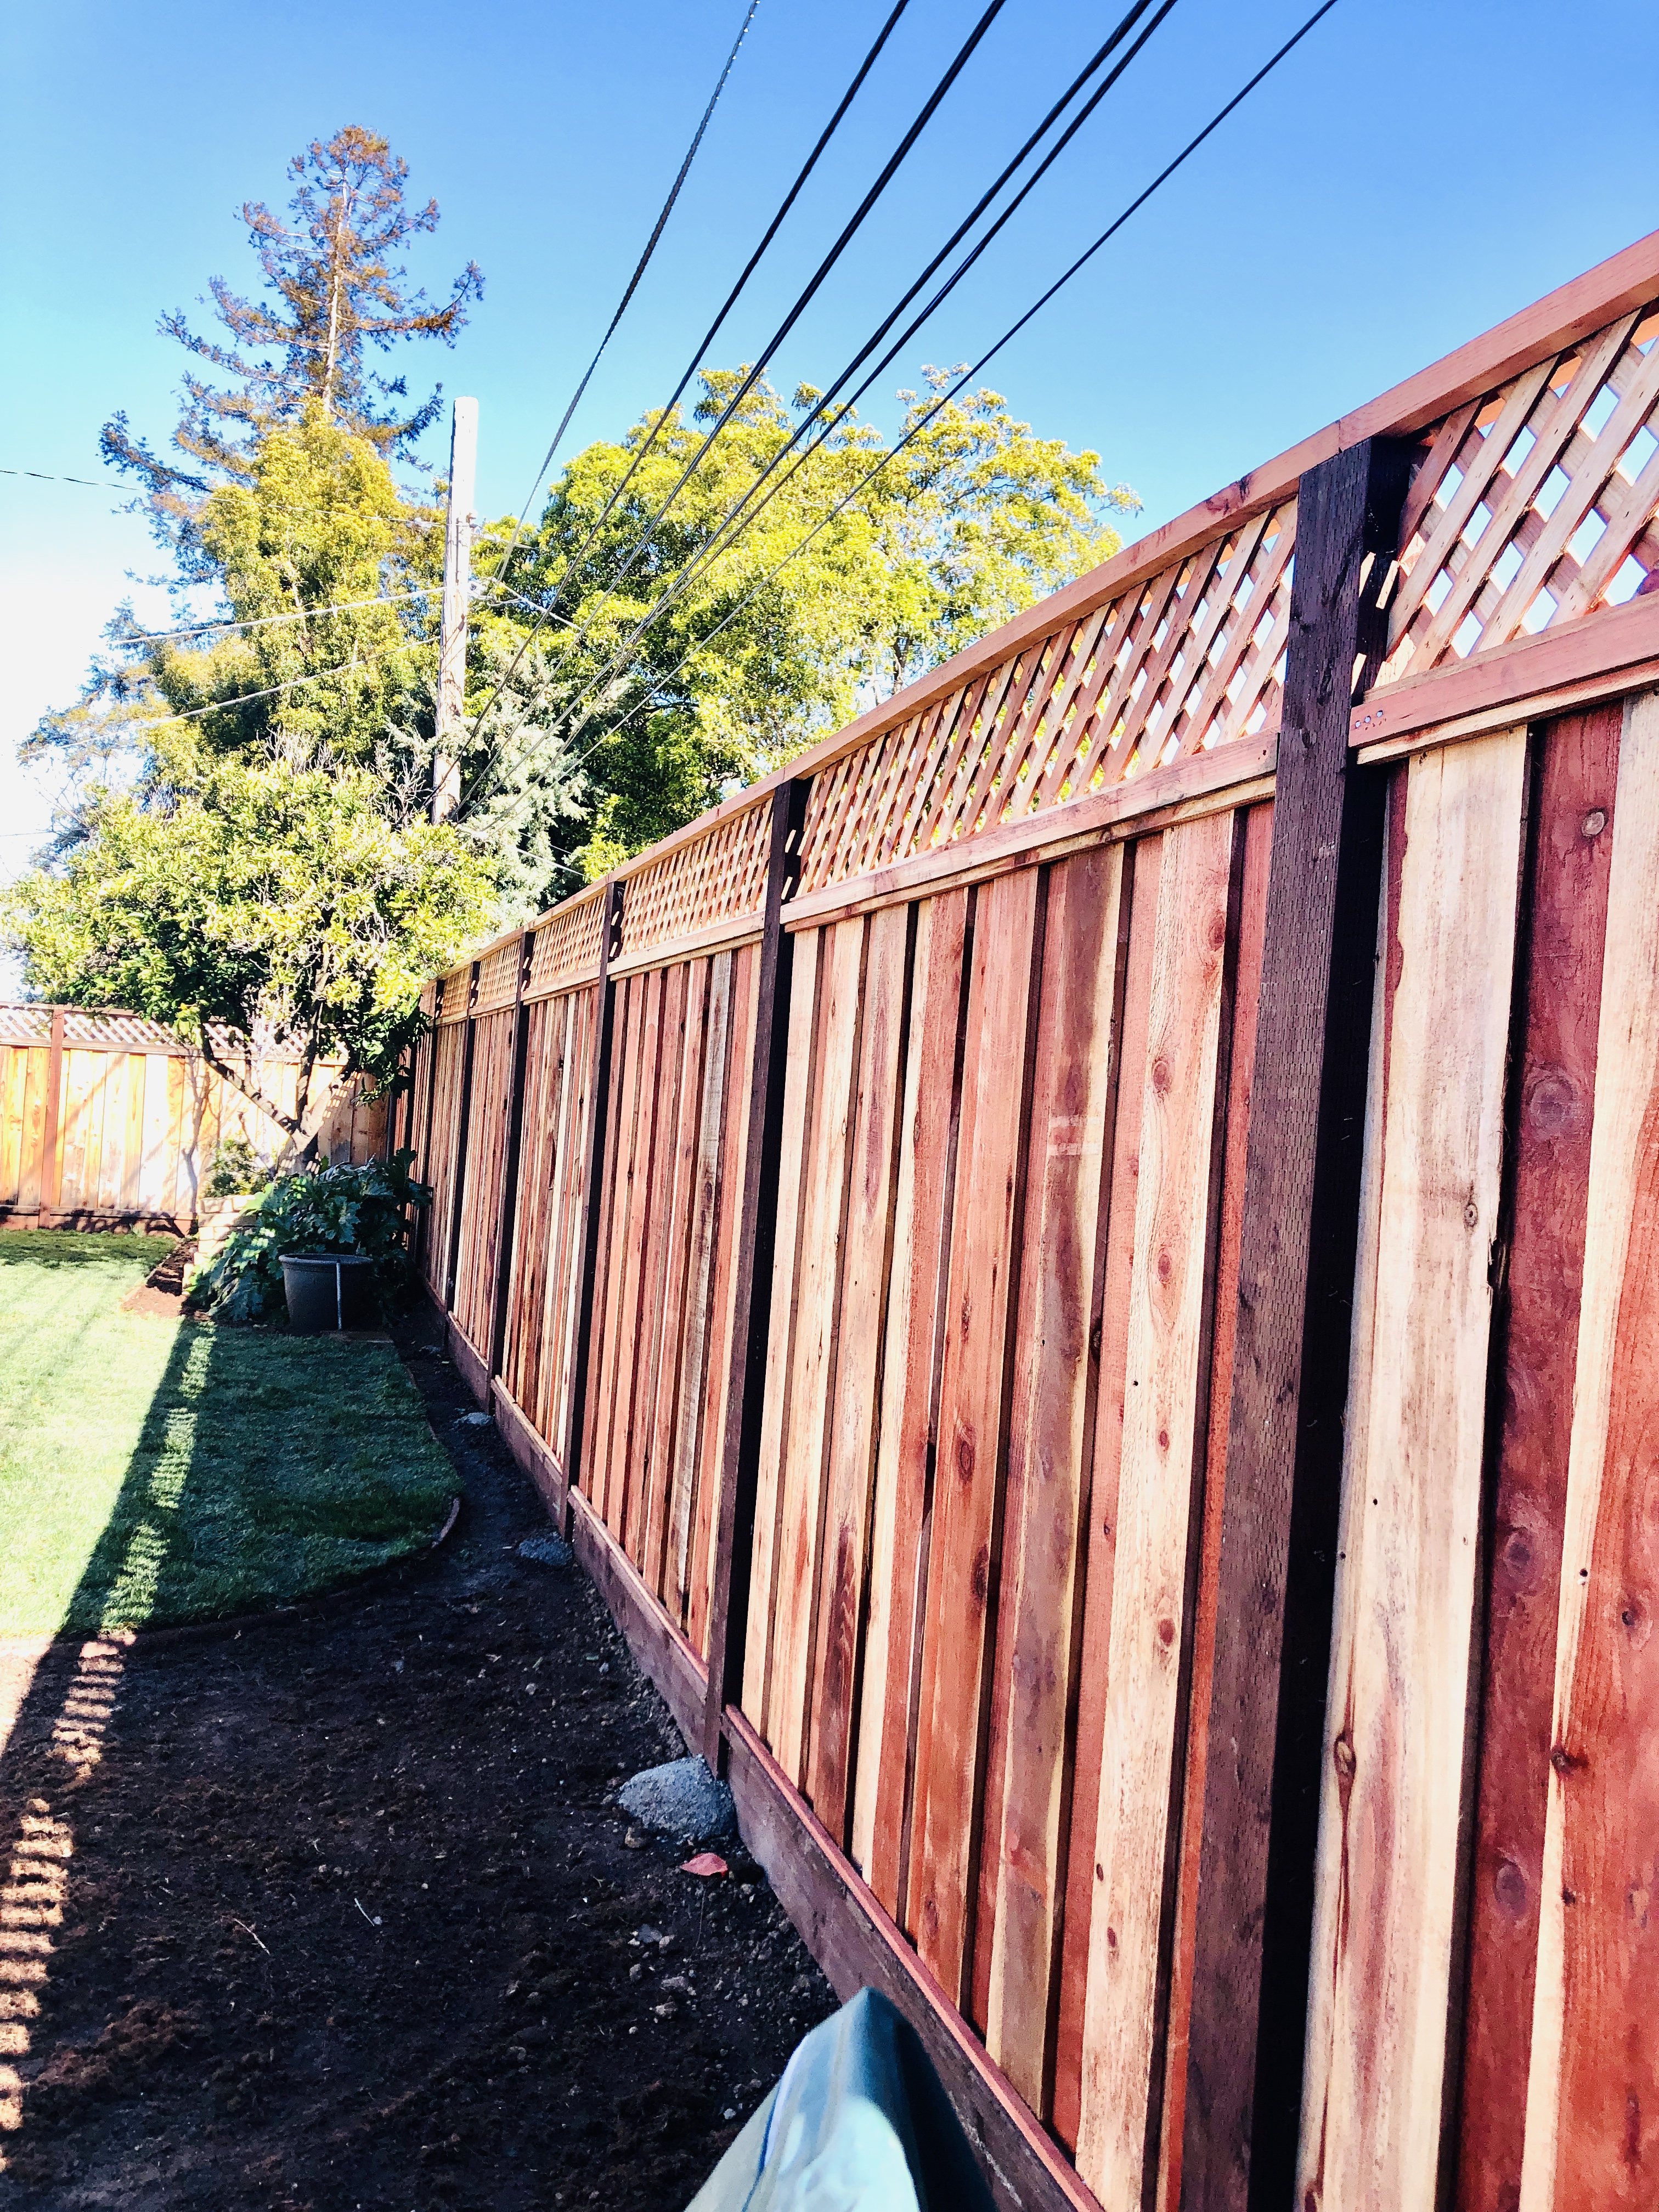 8' height fence with lattice